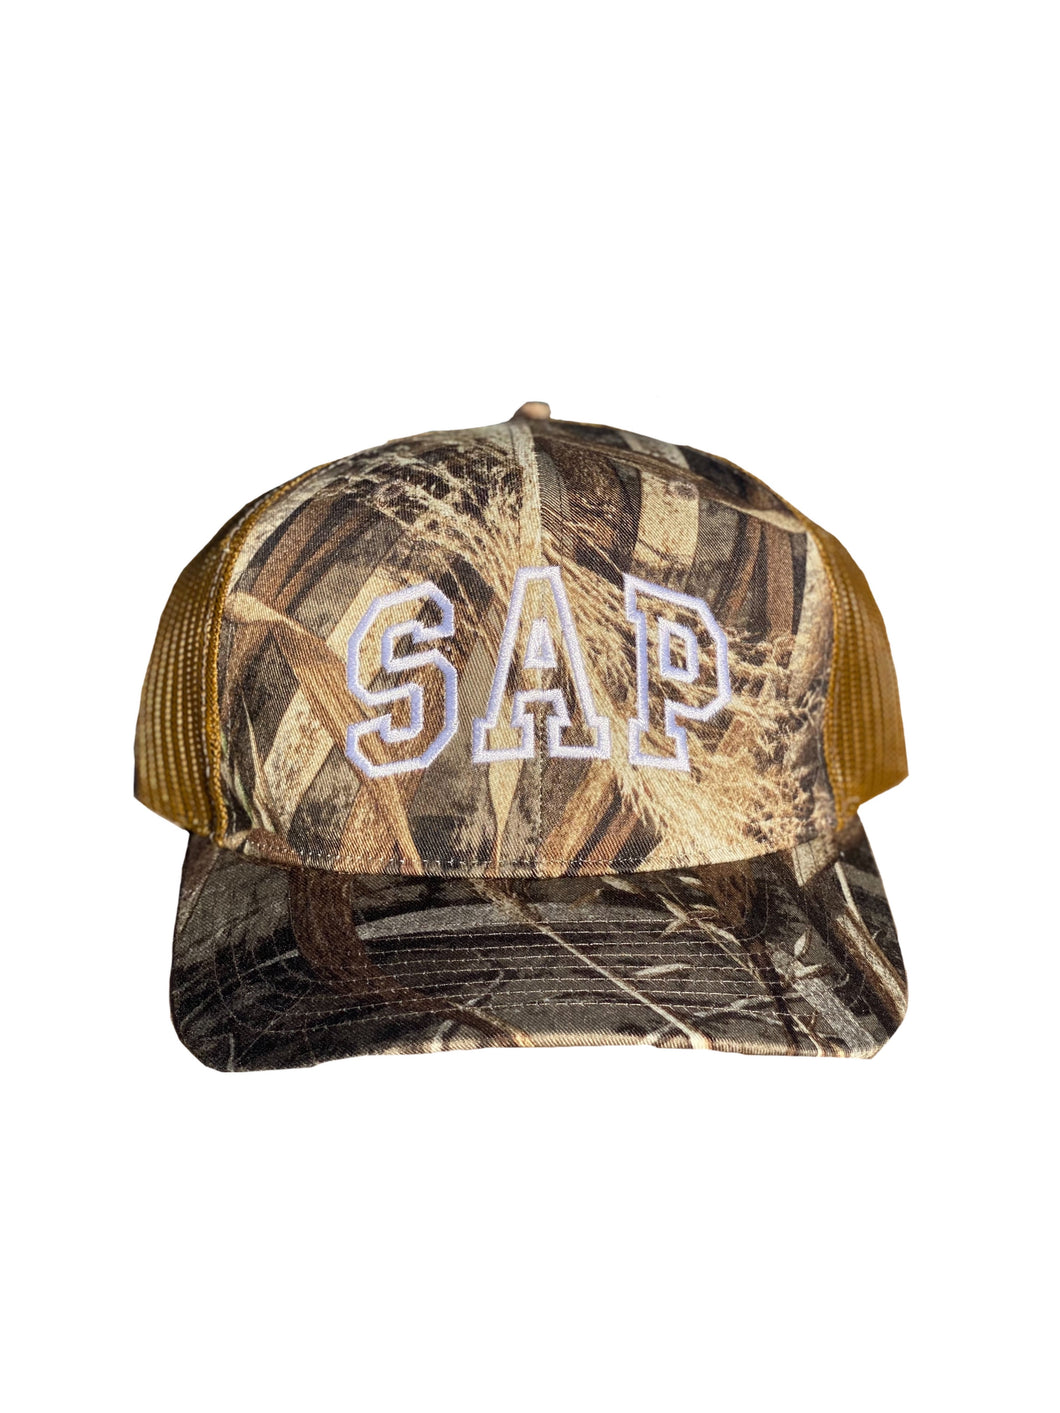 waterfowl camo trucker cap